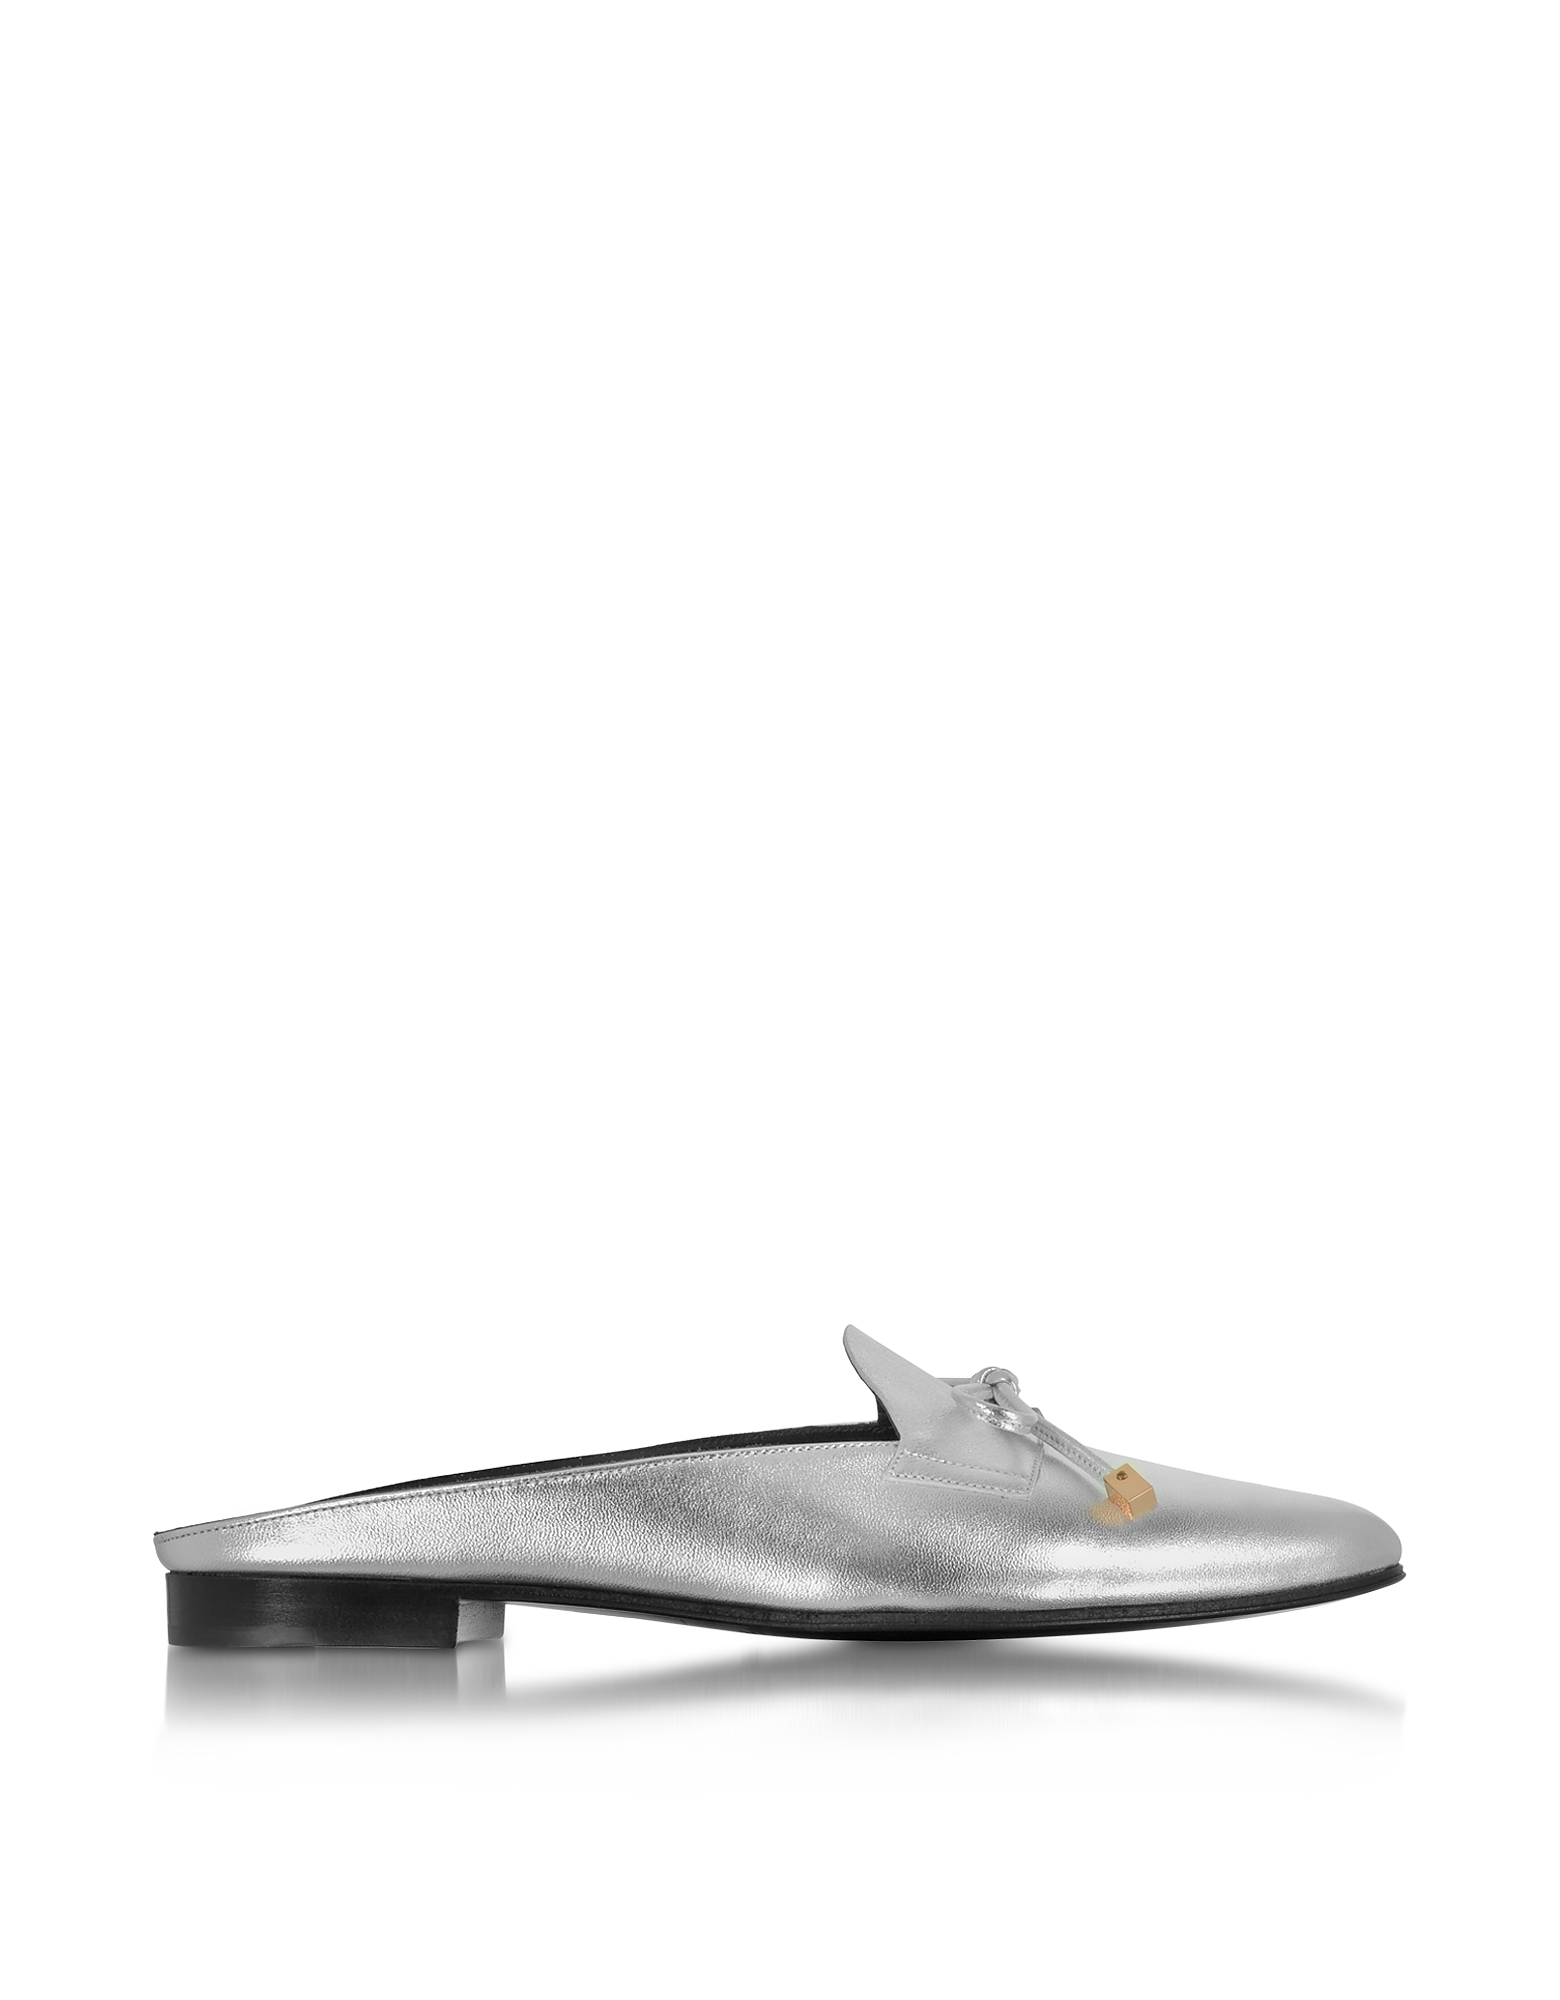 Pierre Hardy Shoes, Mademoiselle Jacno Silver Metallic Leather Mule